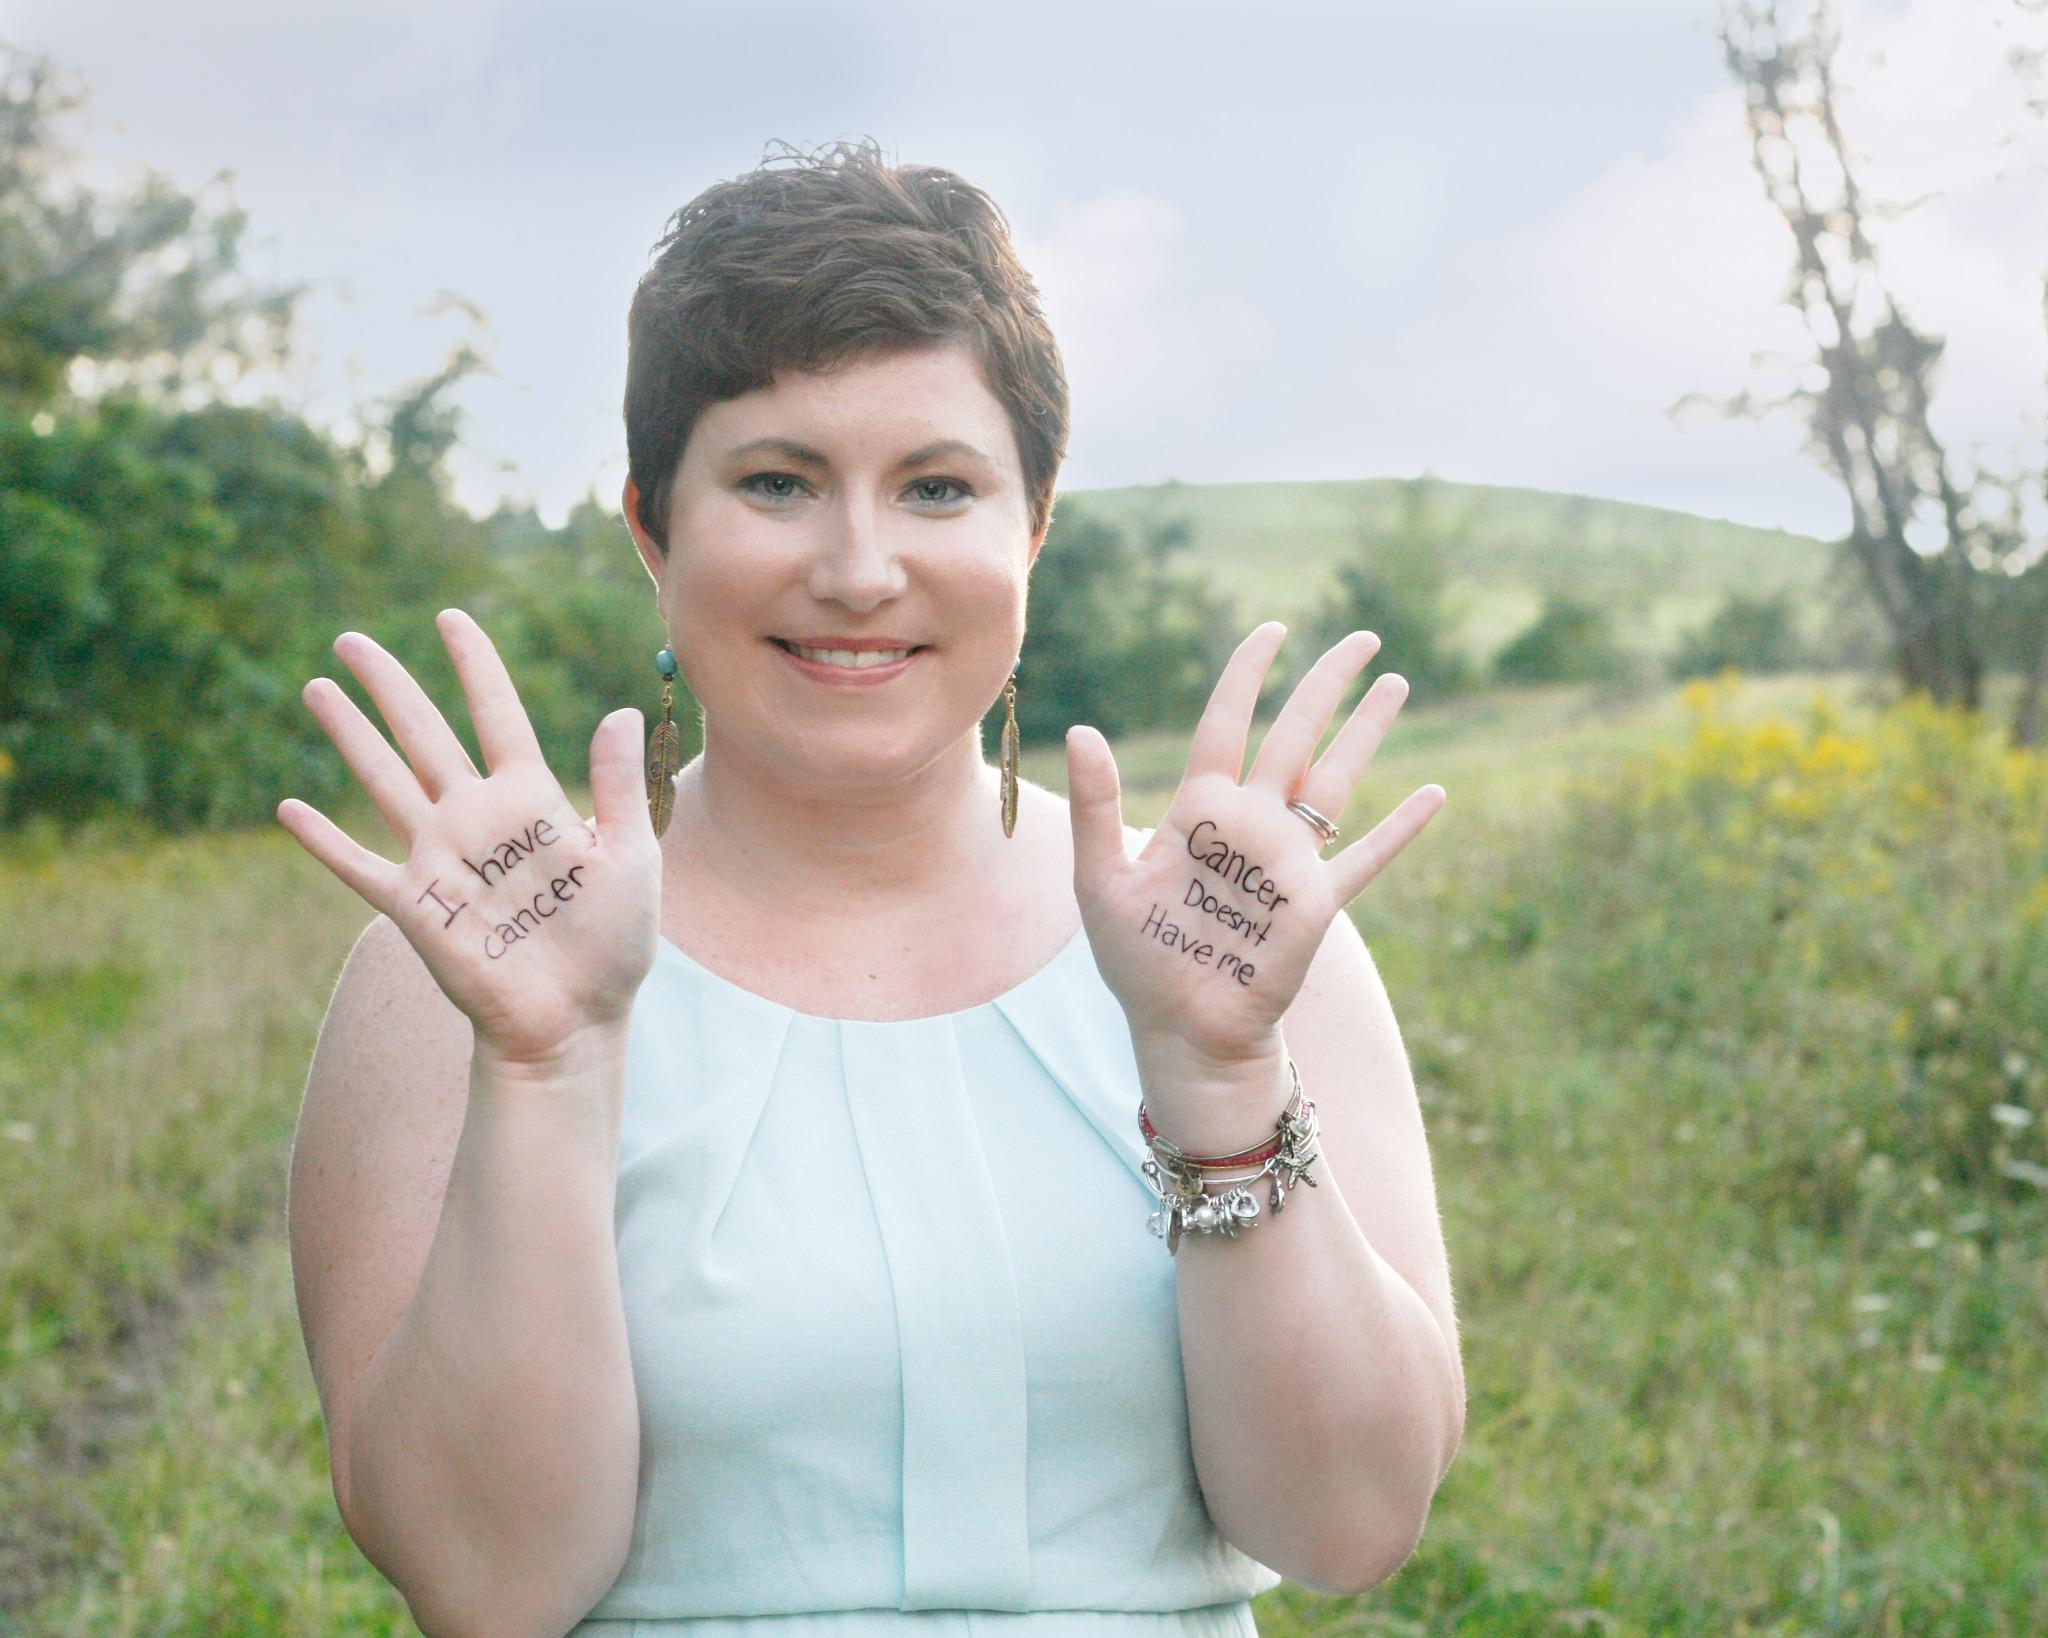 We Stand Up with the #inspiring and #strong Kate Crawford, currently battling stage IV metastatic #breastcancer. http://t.co/dnIpVkU9C8